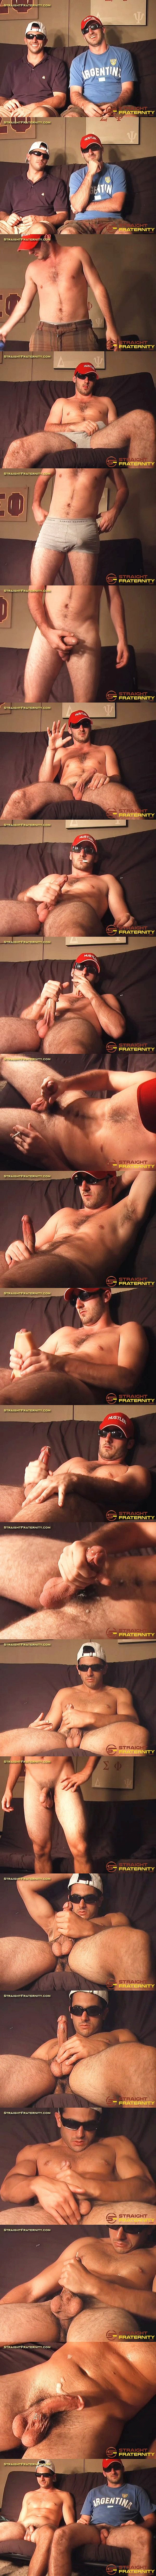 Straightfraternity - hot straight muscle jocks, real brothers Jayme and Jayson strip down and jerk off for the first time on screen in Two Real Brothers Compare Cocks 02